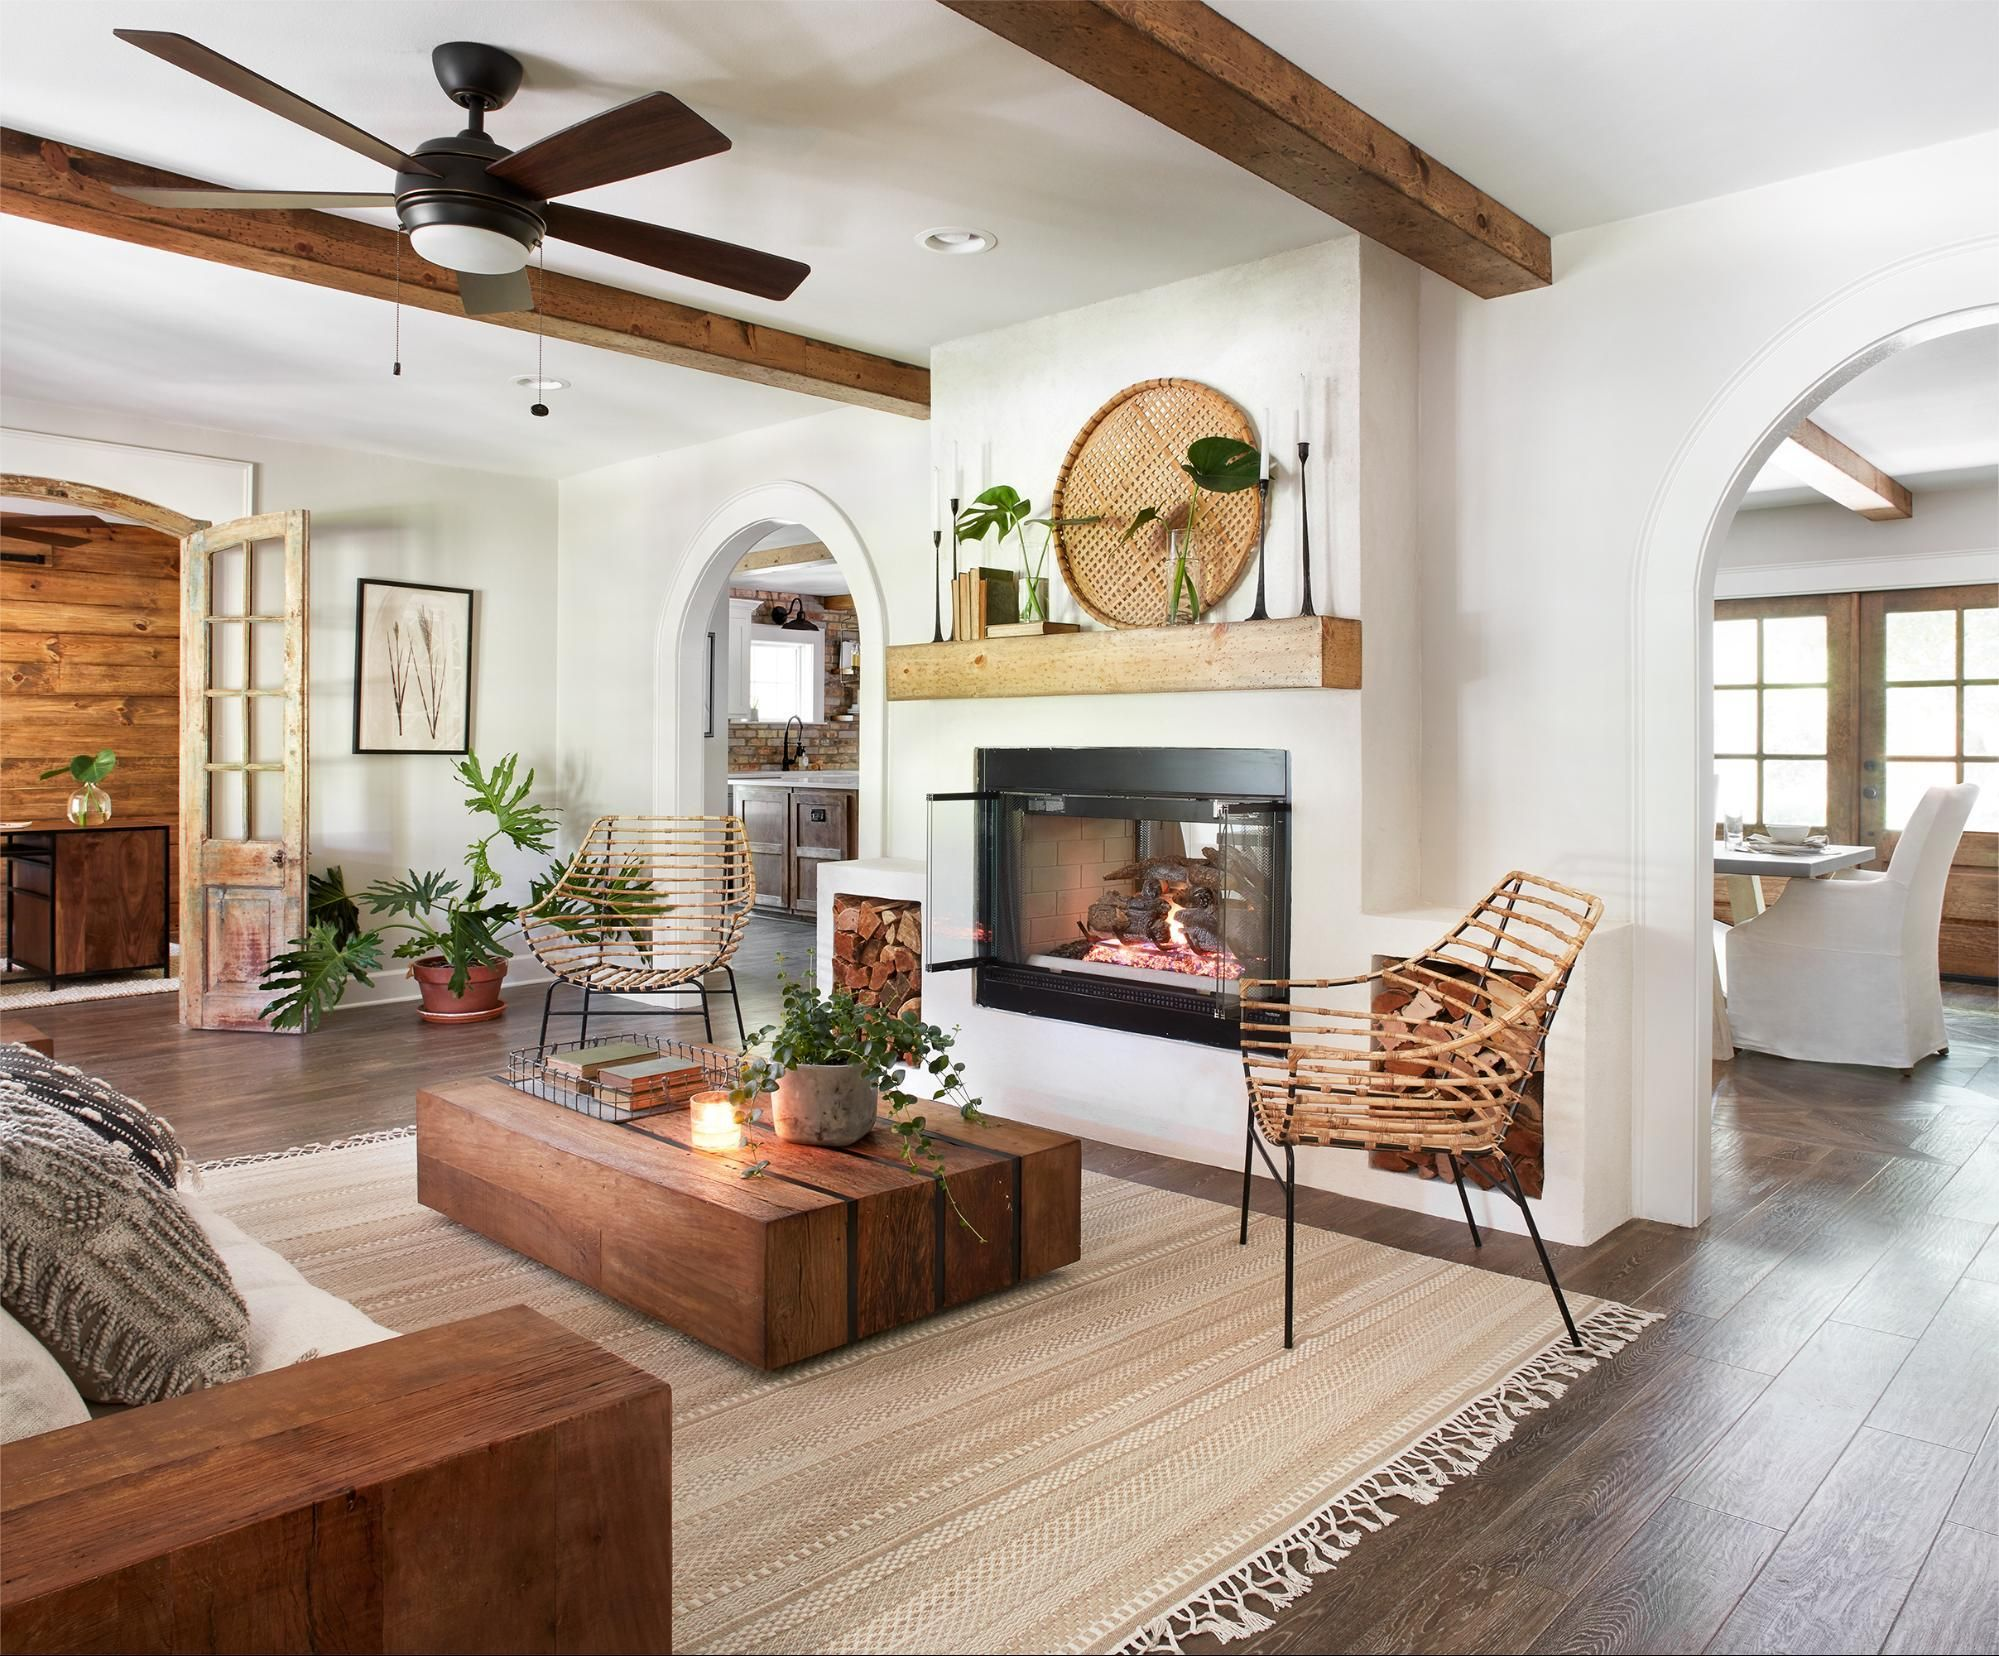 Charming Rustic Coastal Design Tips From Joanna Gaines | Fixer Upper